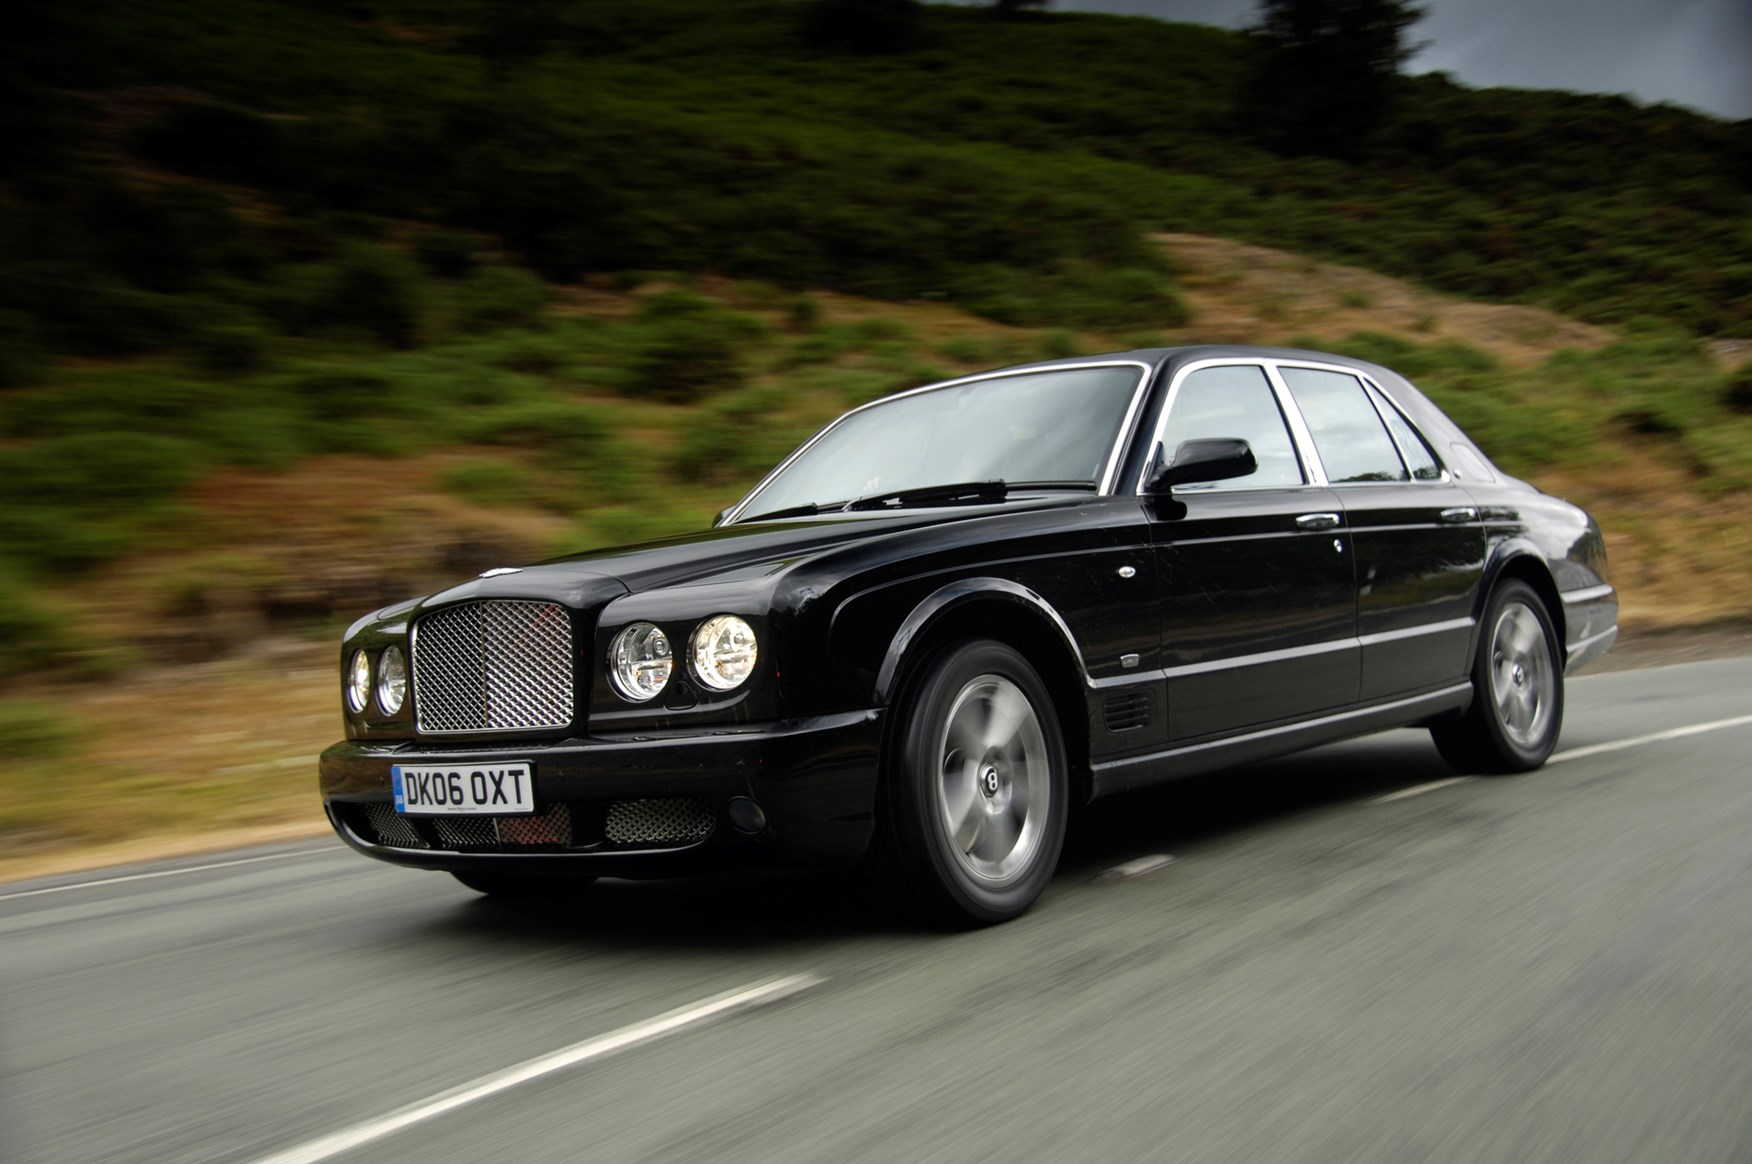 Bentley arnage saloon review 1998 2009 parkers view all images of the bentley arnage 98 09 vanachro Image collections